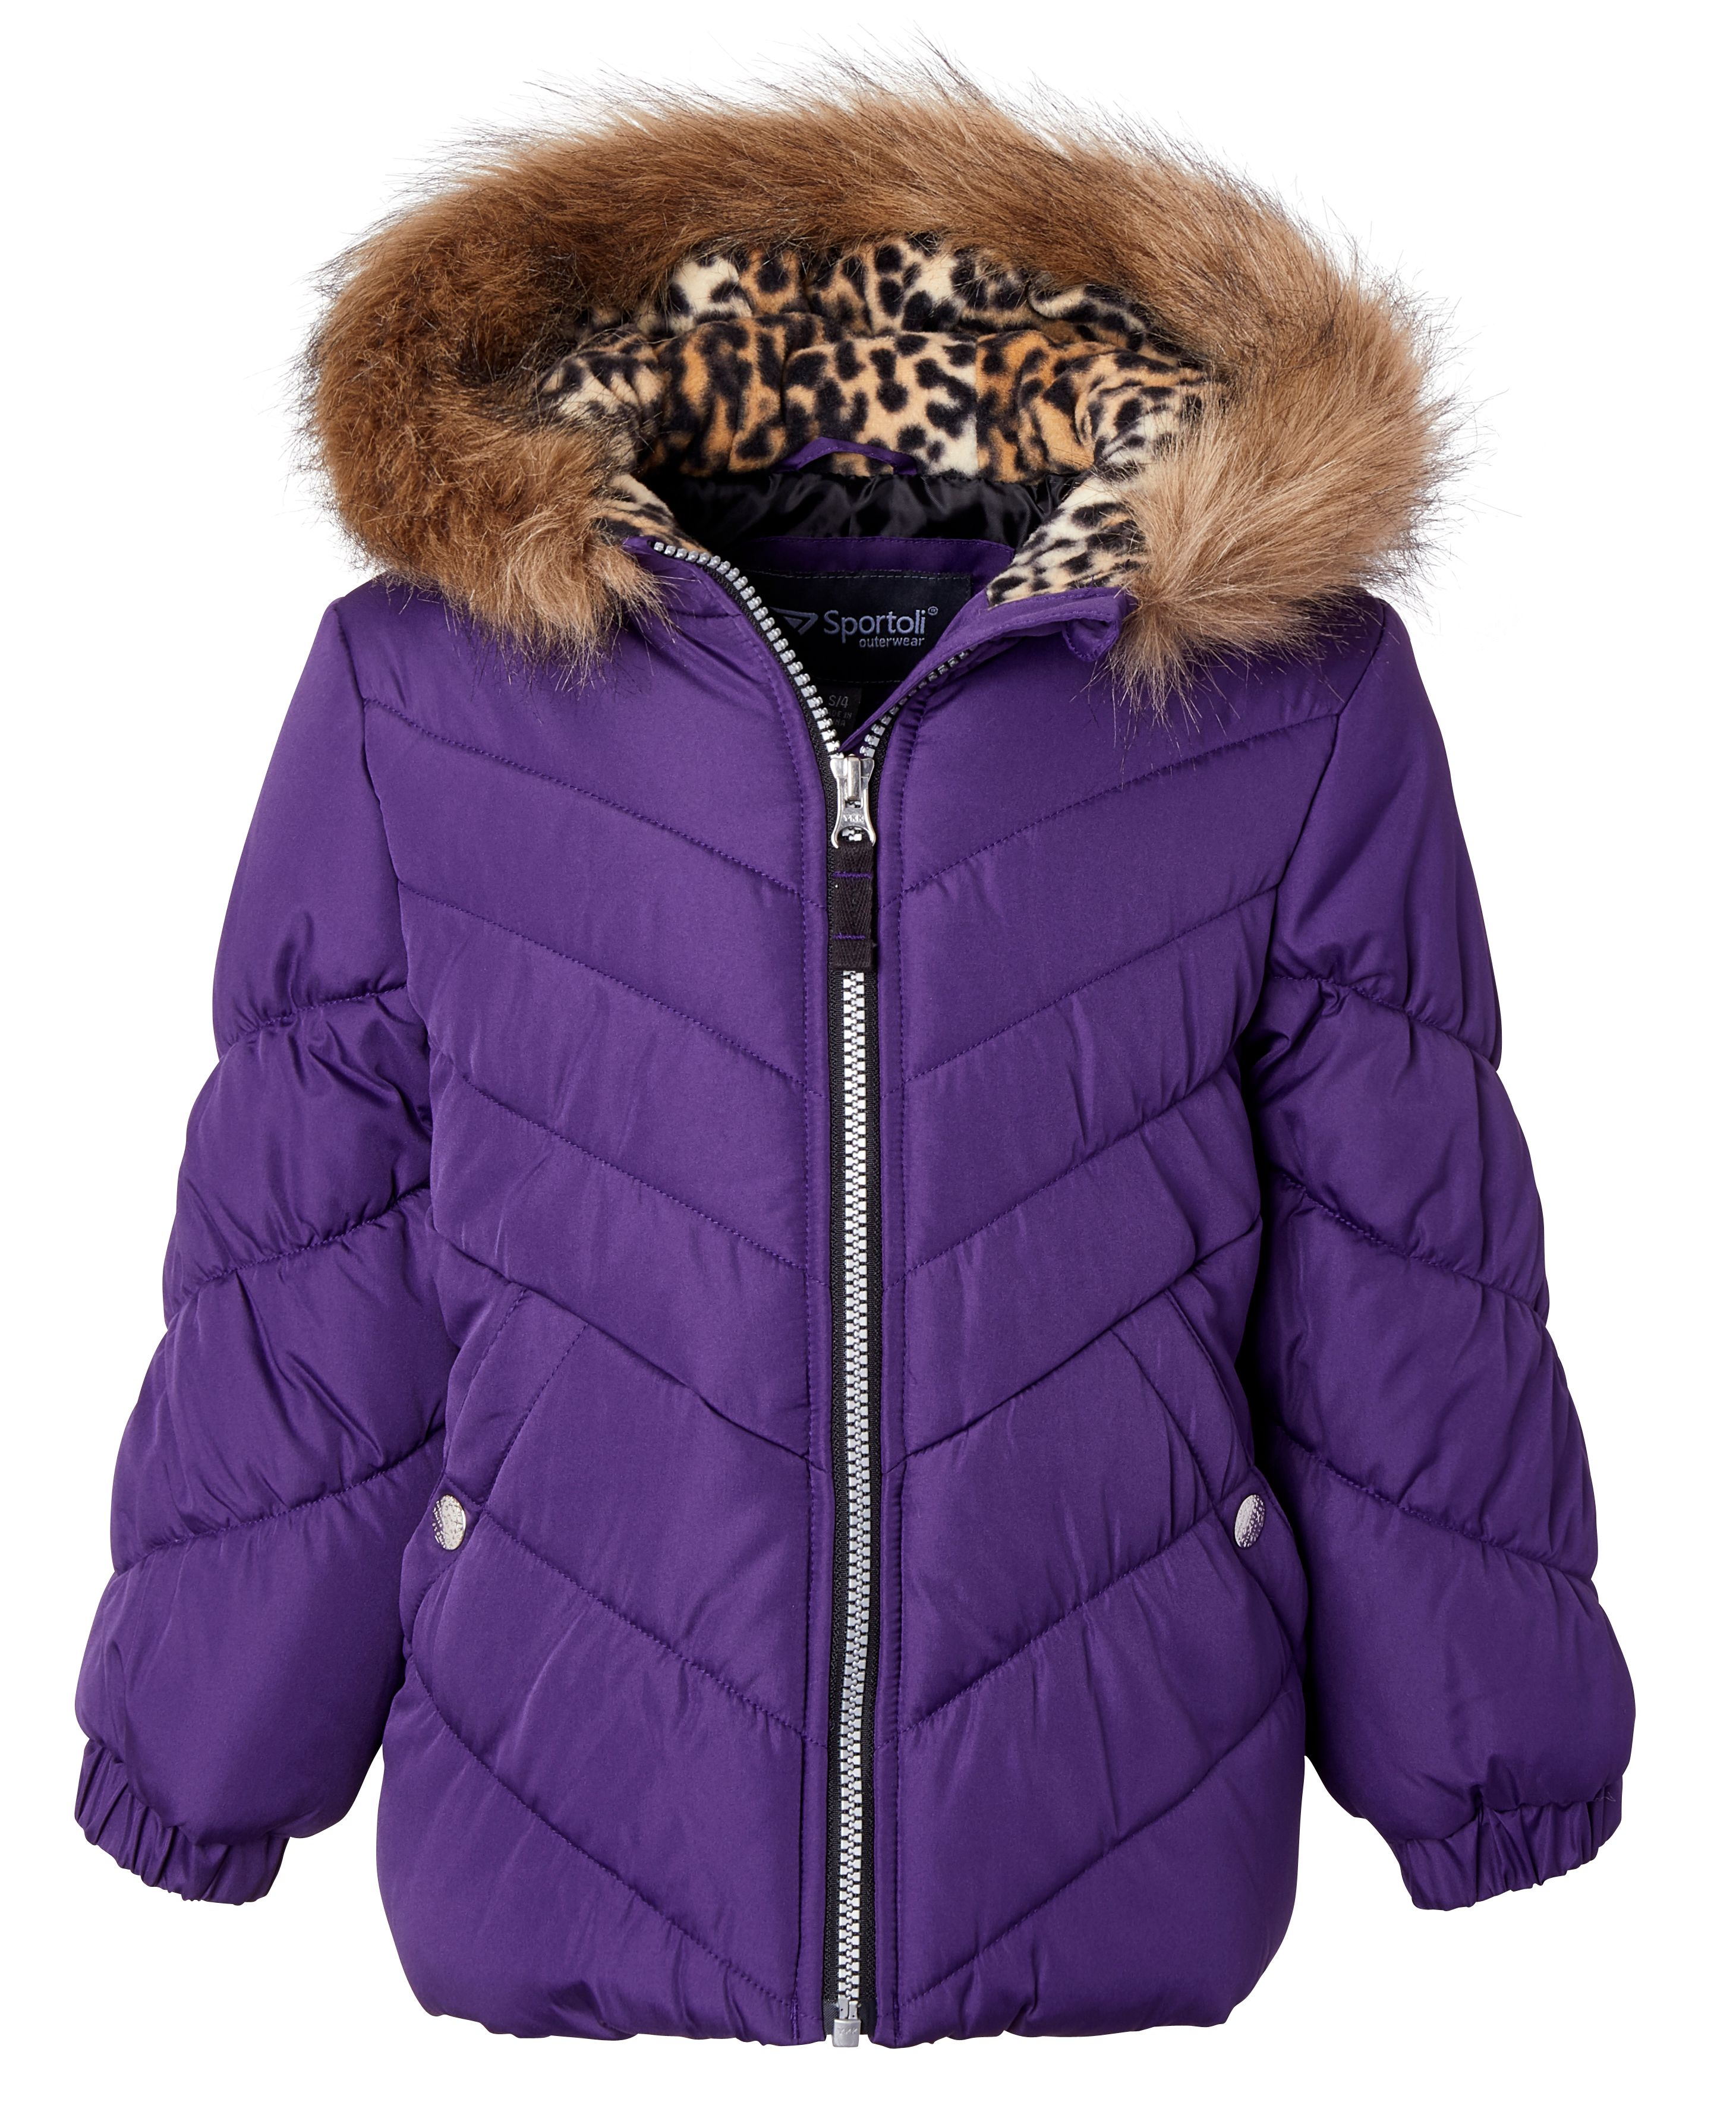 Toddler Girls 24 mo Purple Puffer Coat Jacket with Hood and Fleece Lining